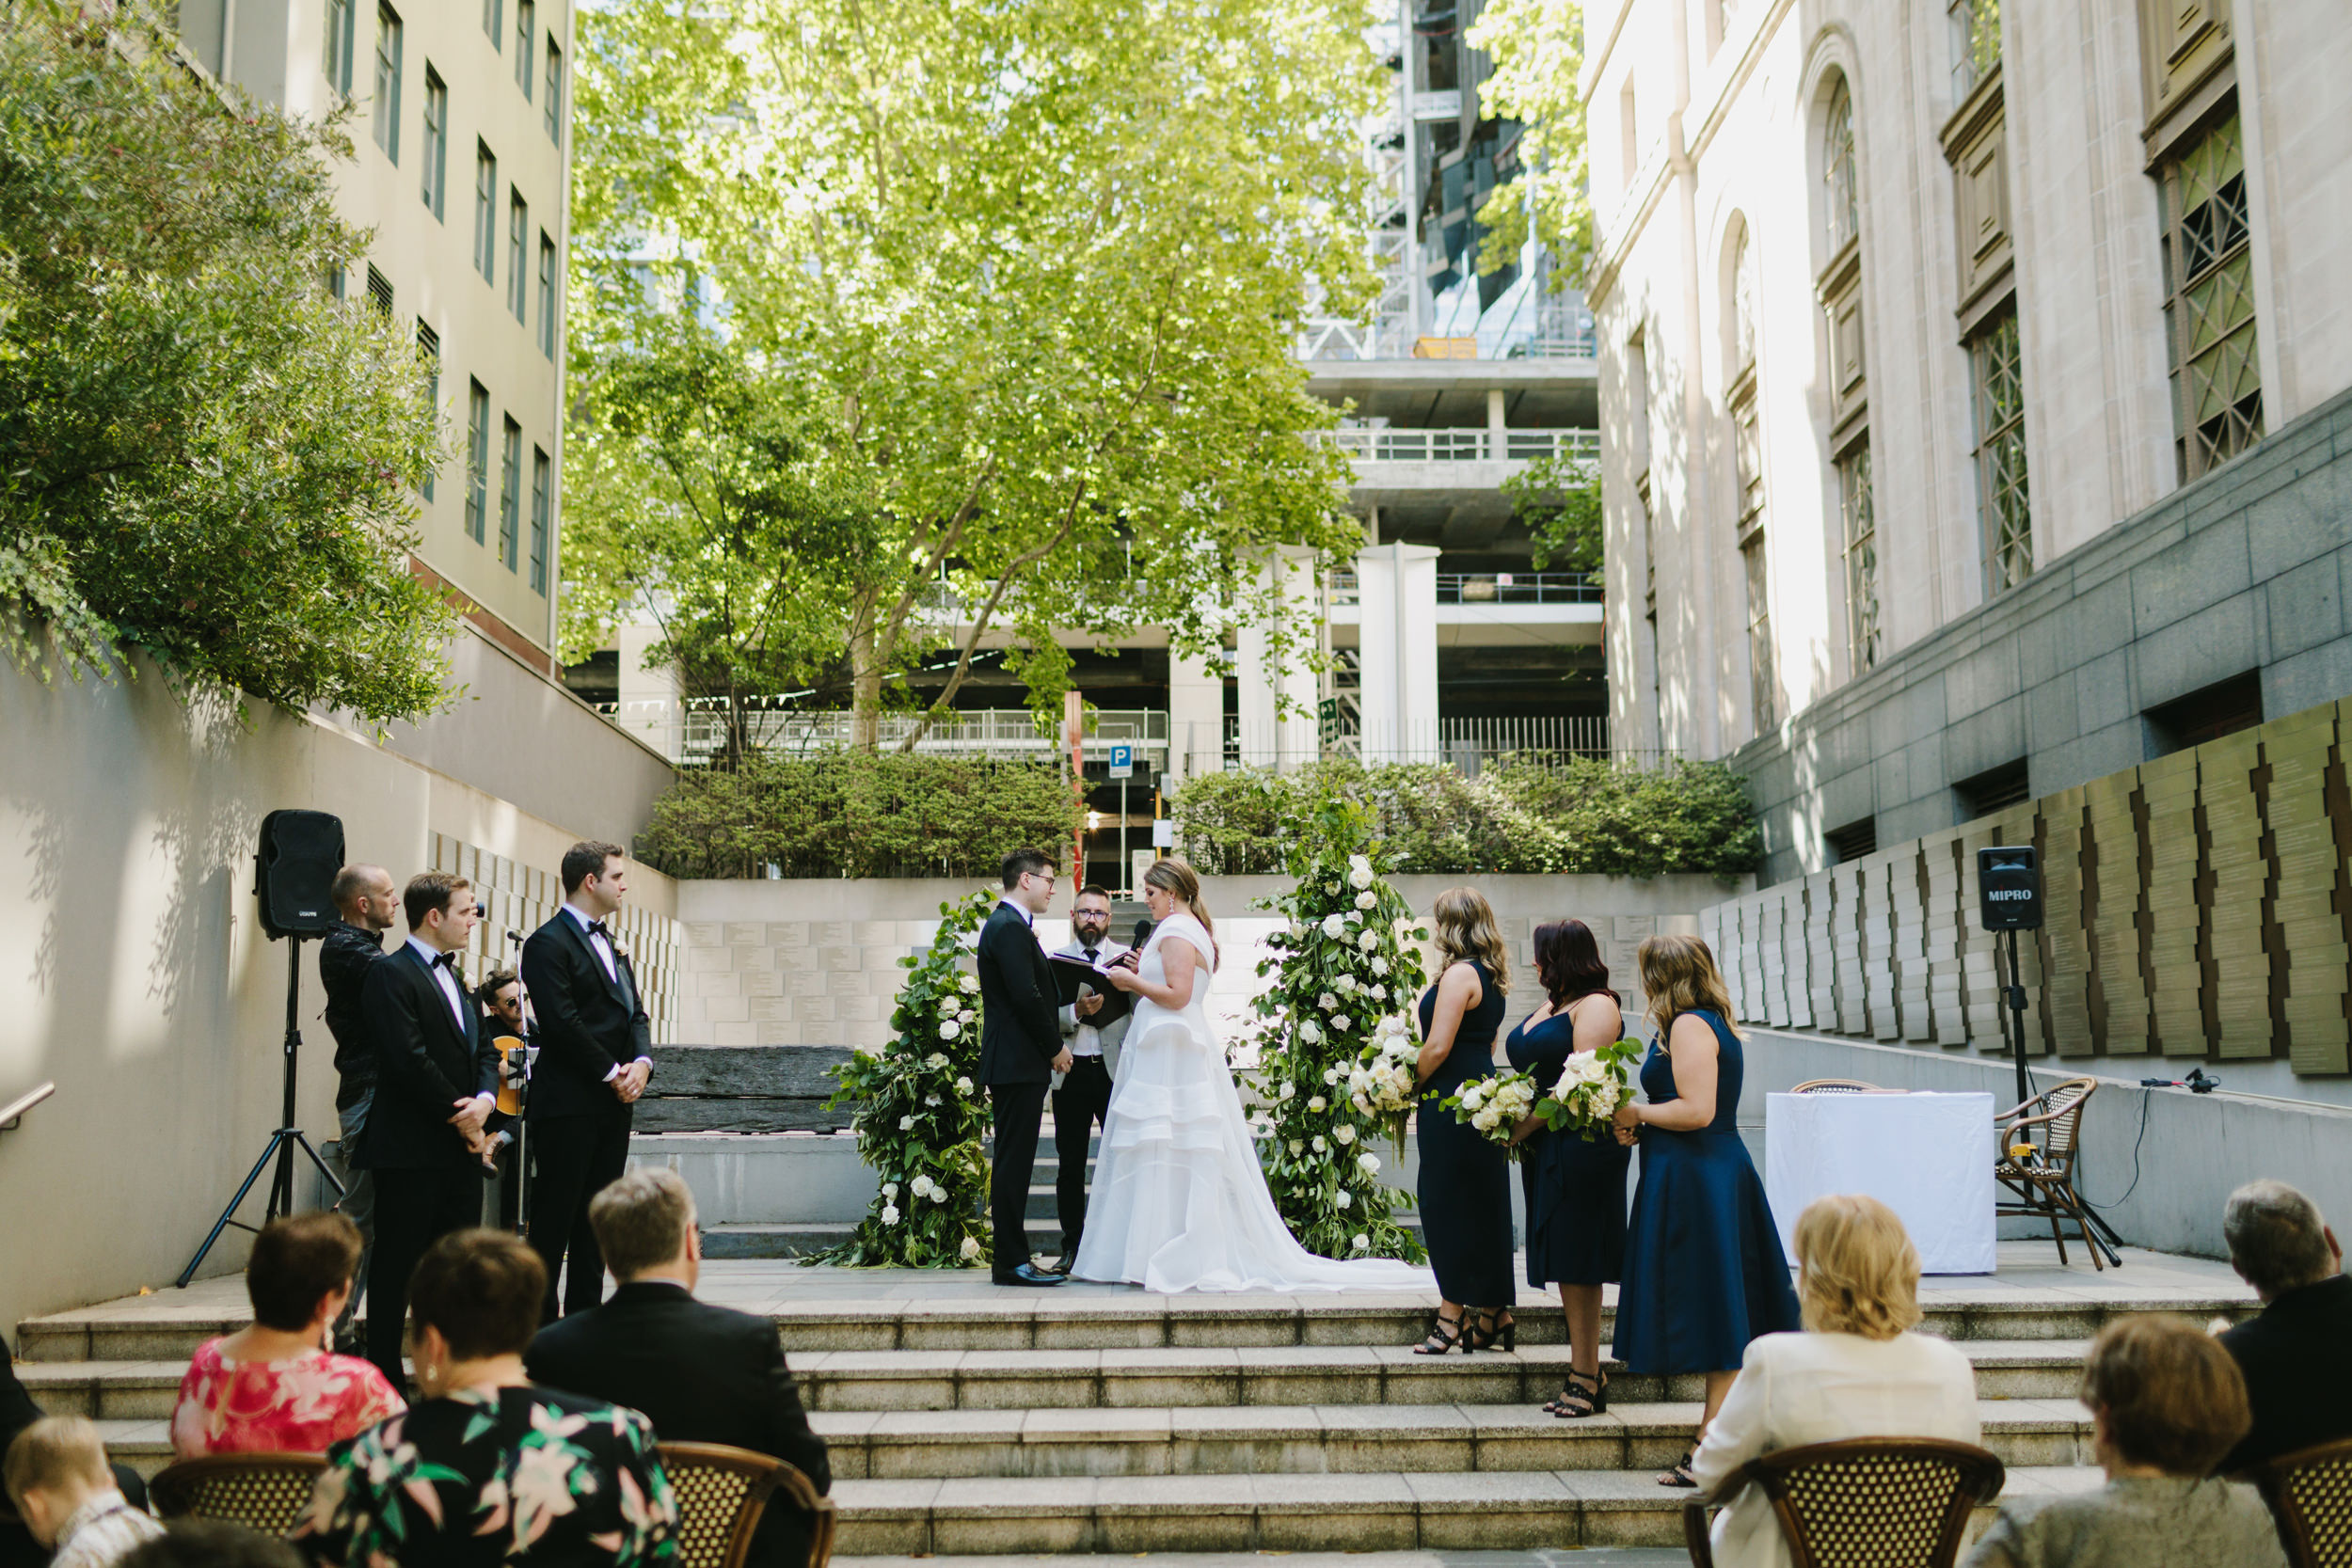 Melbourne_City_Rooftop_Wedding_Tyson_Brigette063.JPG